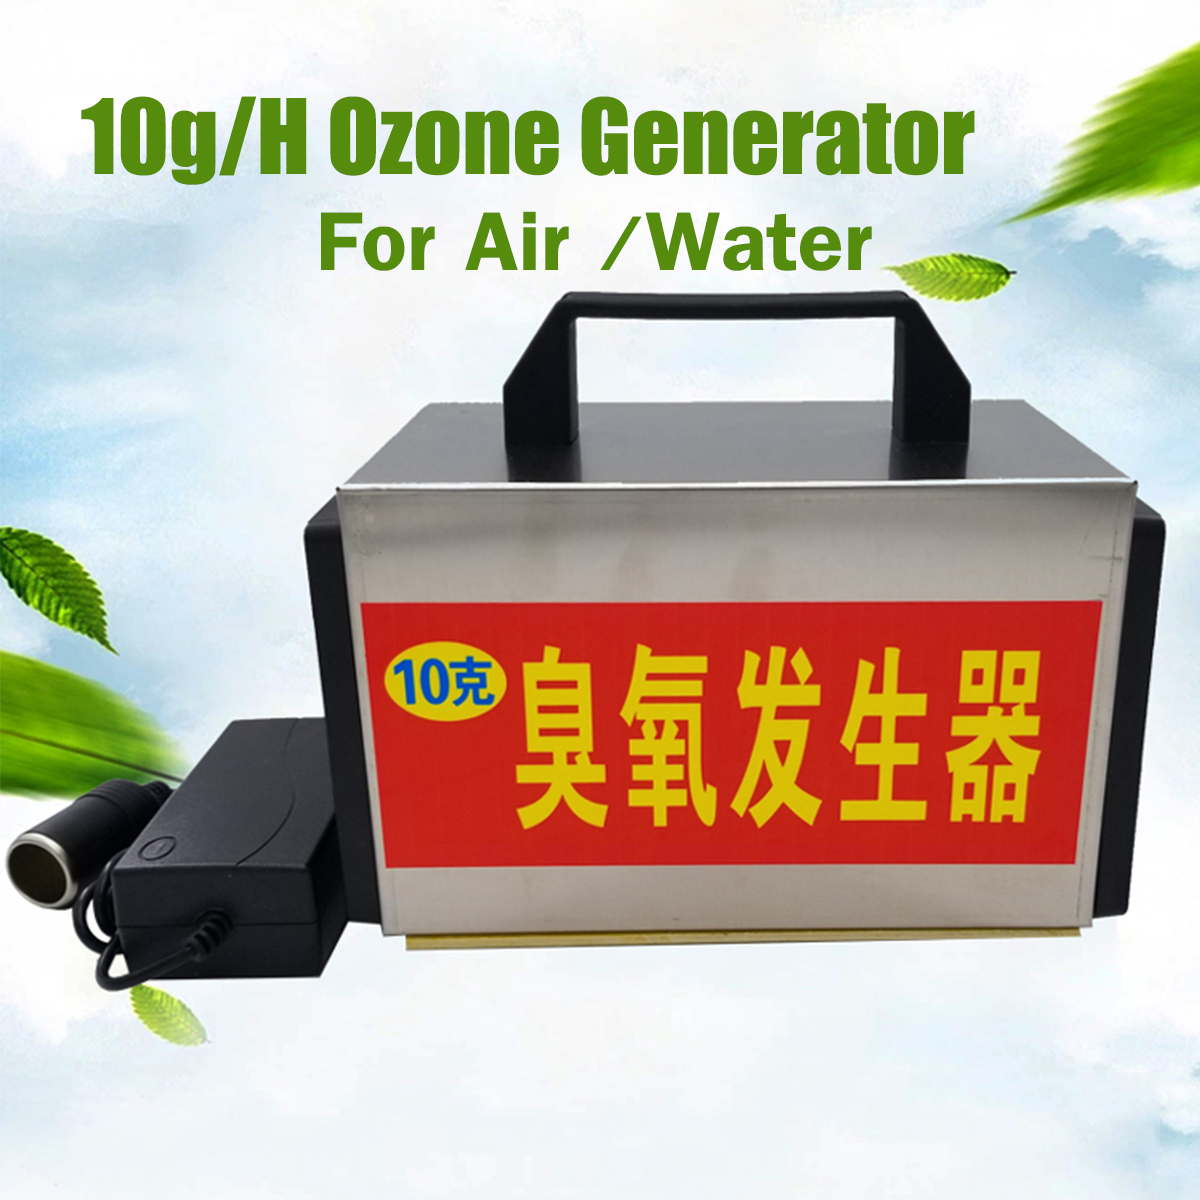 Multifunction 10G 220V/110V Water Ozone O3 Generator Ozonator Machine Air Purifier Filter Sterilizer for Water Air ostin футболка для мальчиков